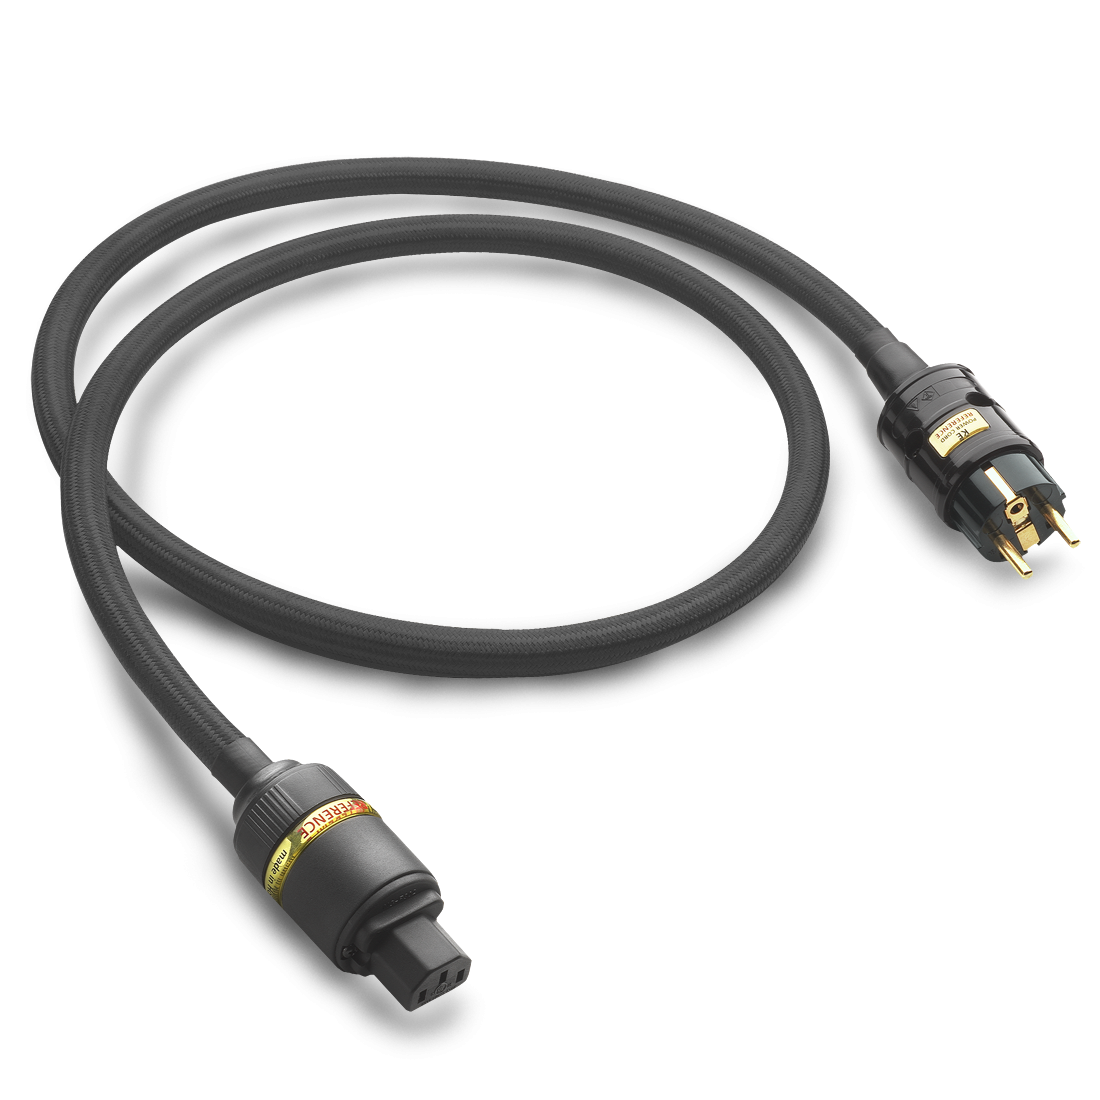 Kemp Elektroniks | POWER CORD REFERENCE